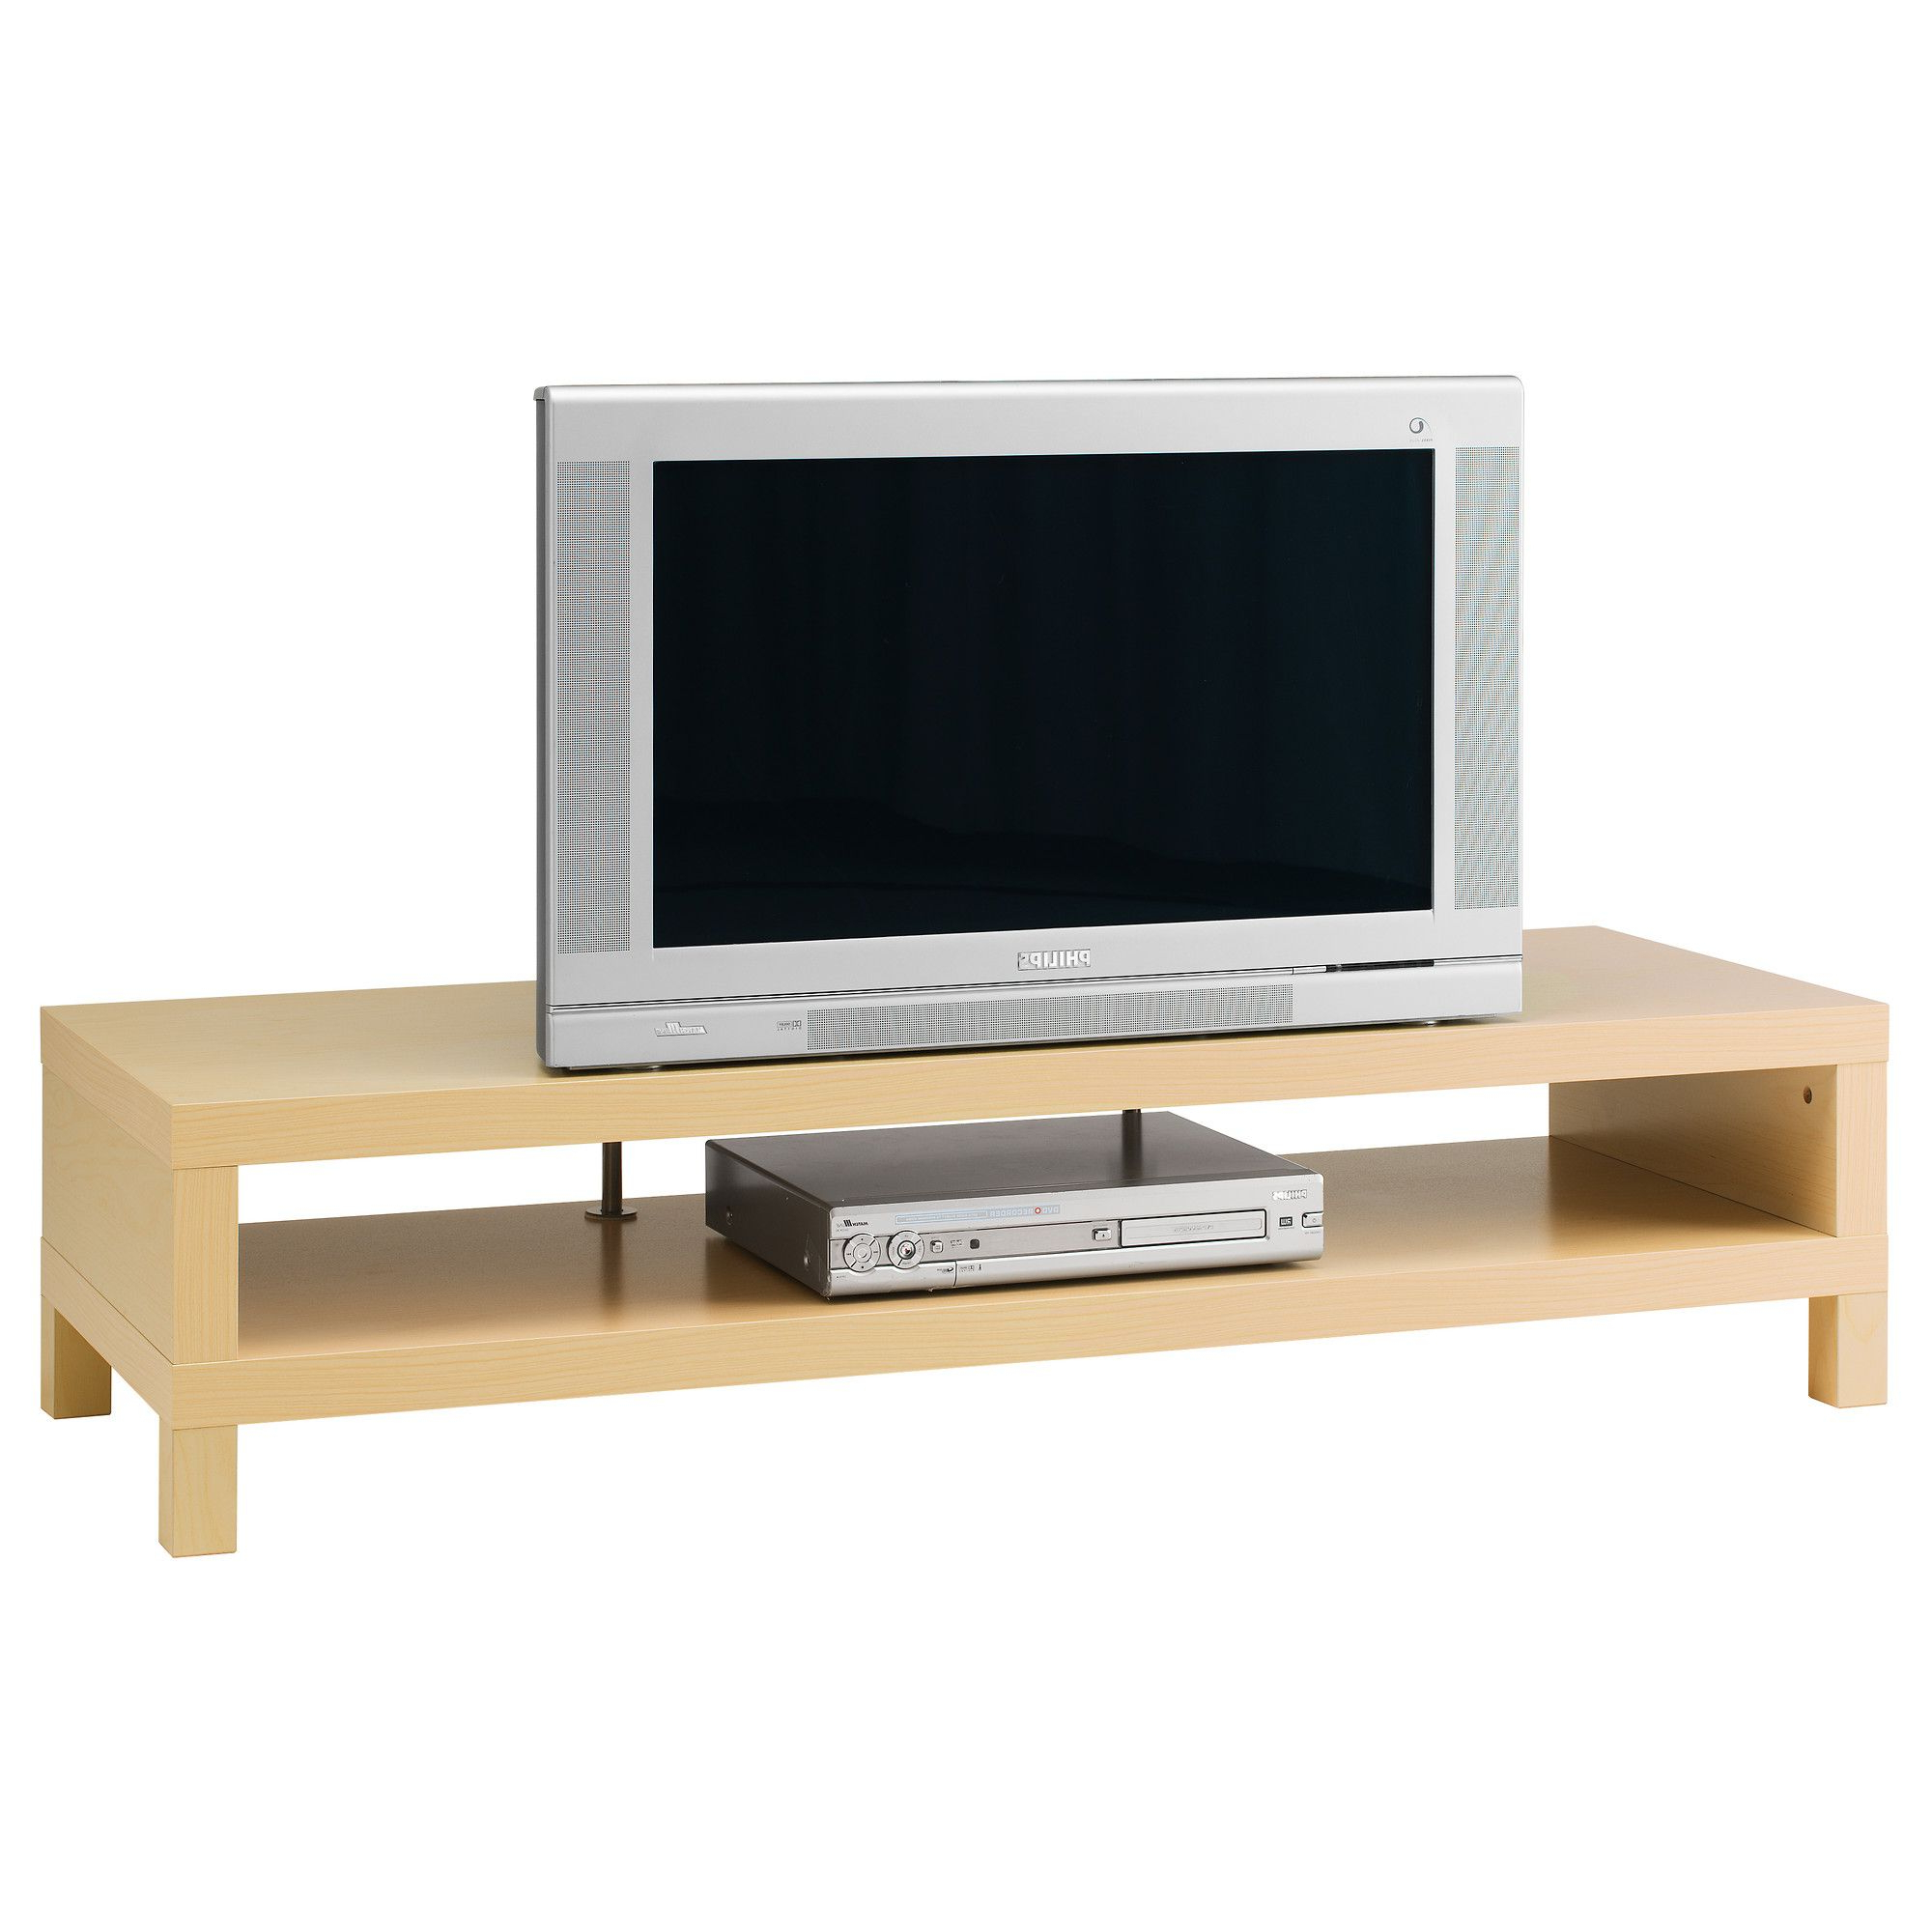 Birch Tv Stands Within Most Recent Lack Tv Unit – Birch Effect – Ikea $ (View 8 of 20)